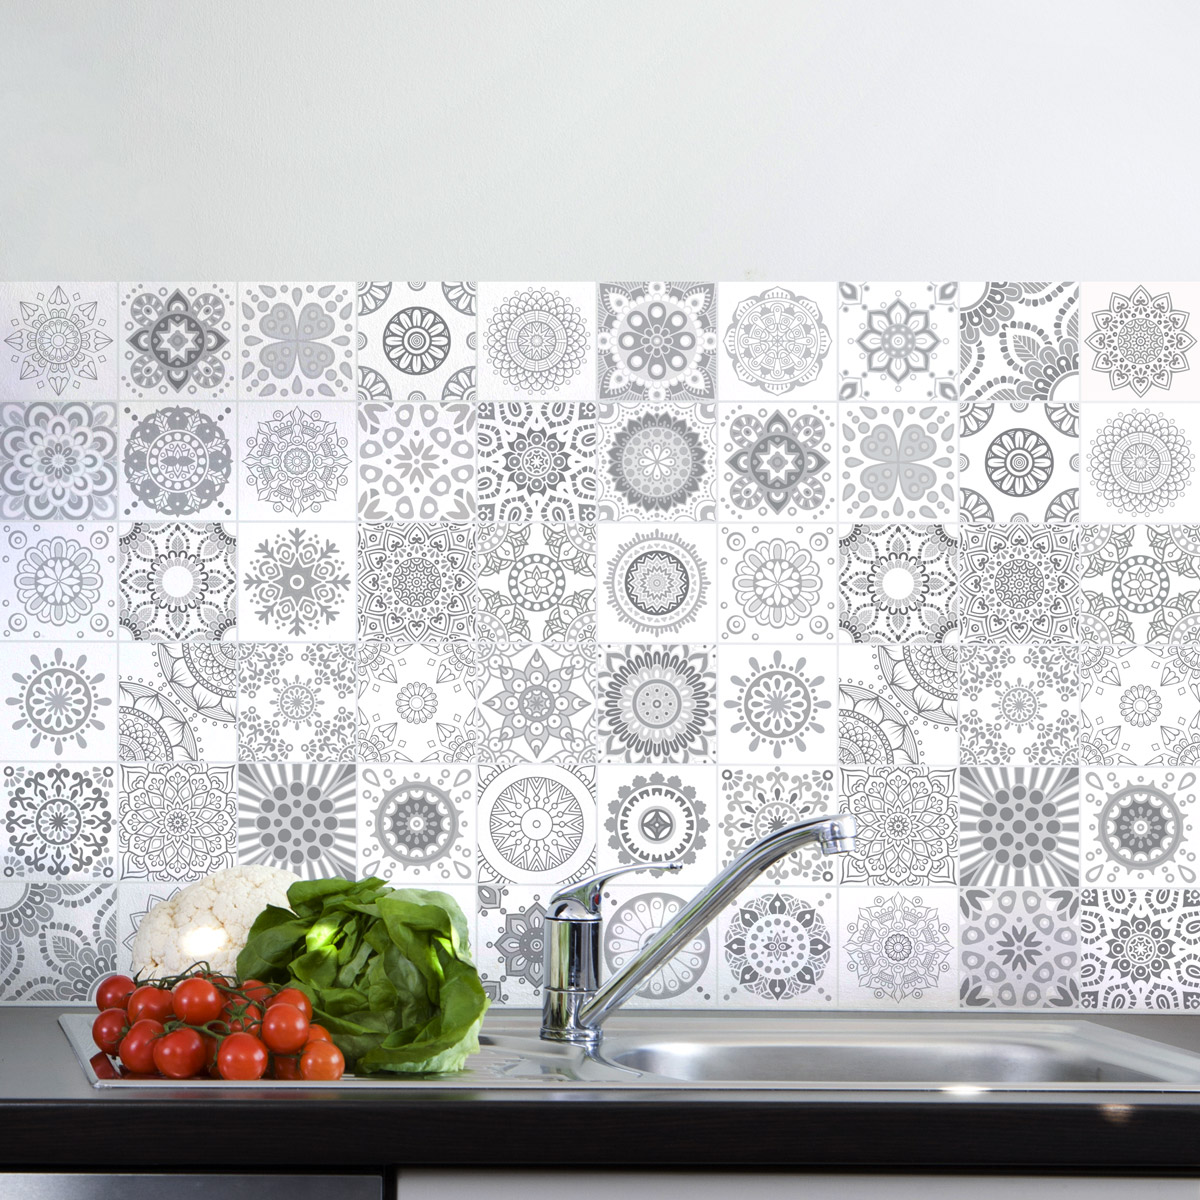 60 stickers carrelages azulejos design nuance de gris for Sticker faience cuisine